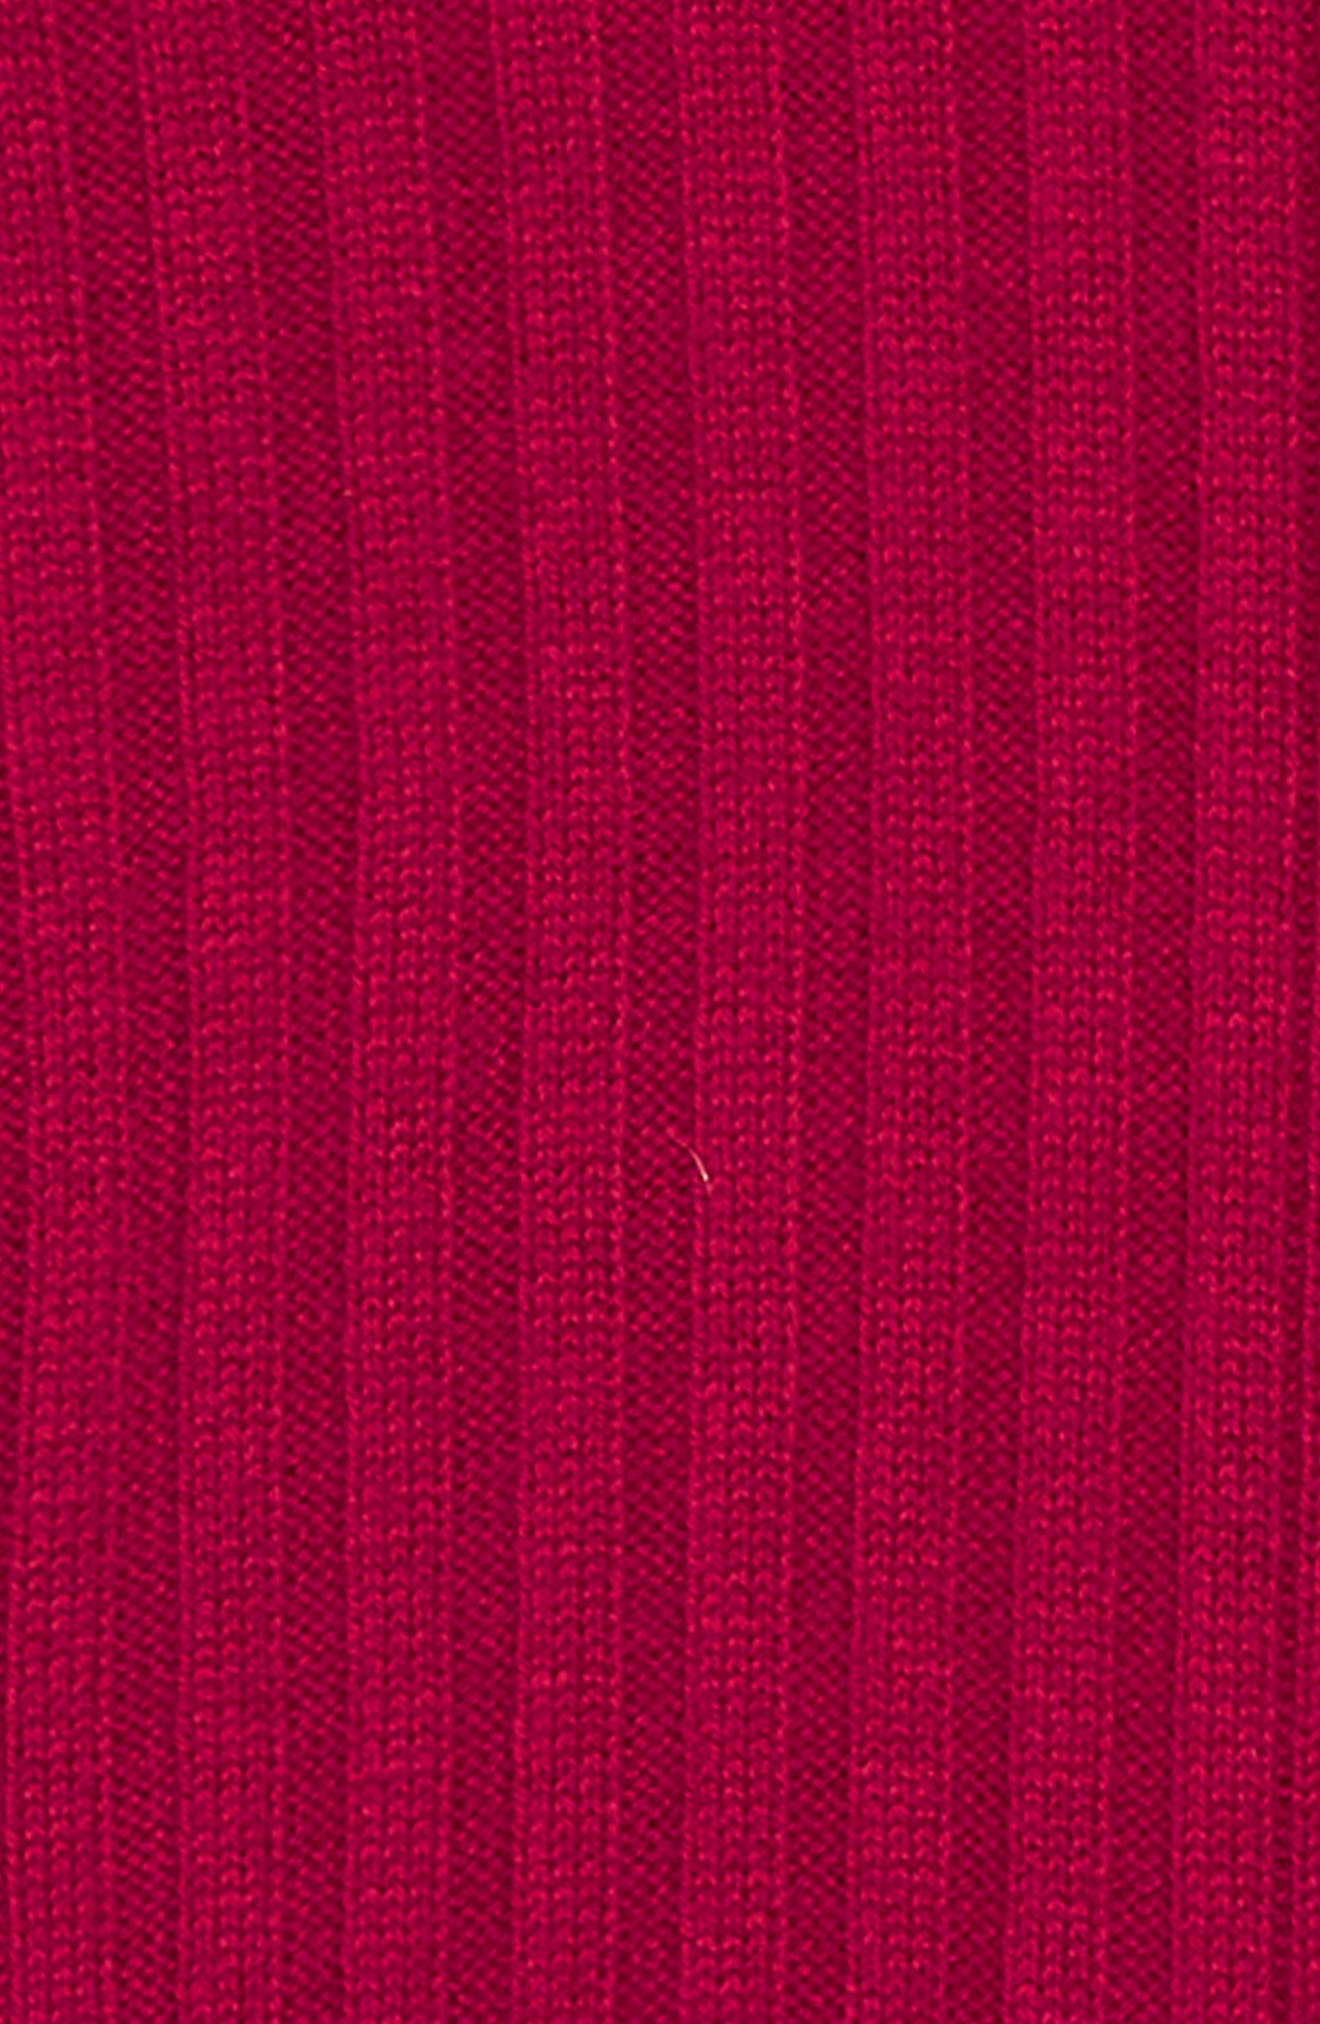 BURBERRY, Kids Cathina Check Detail Wool & Cashmere Sweater Dress, Alternate thumbnail 3, color, BURGUNDY RED